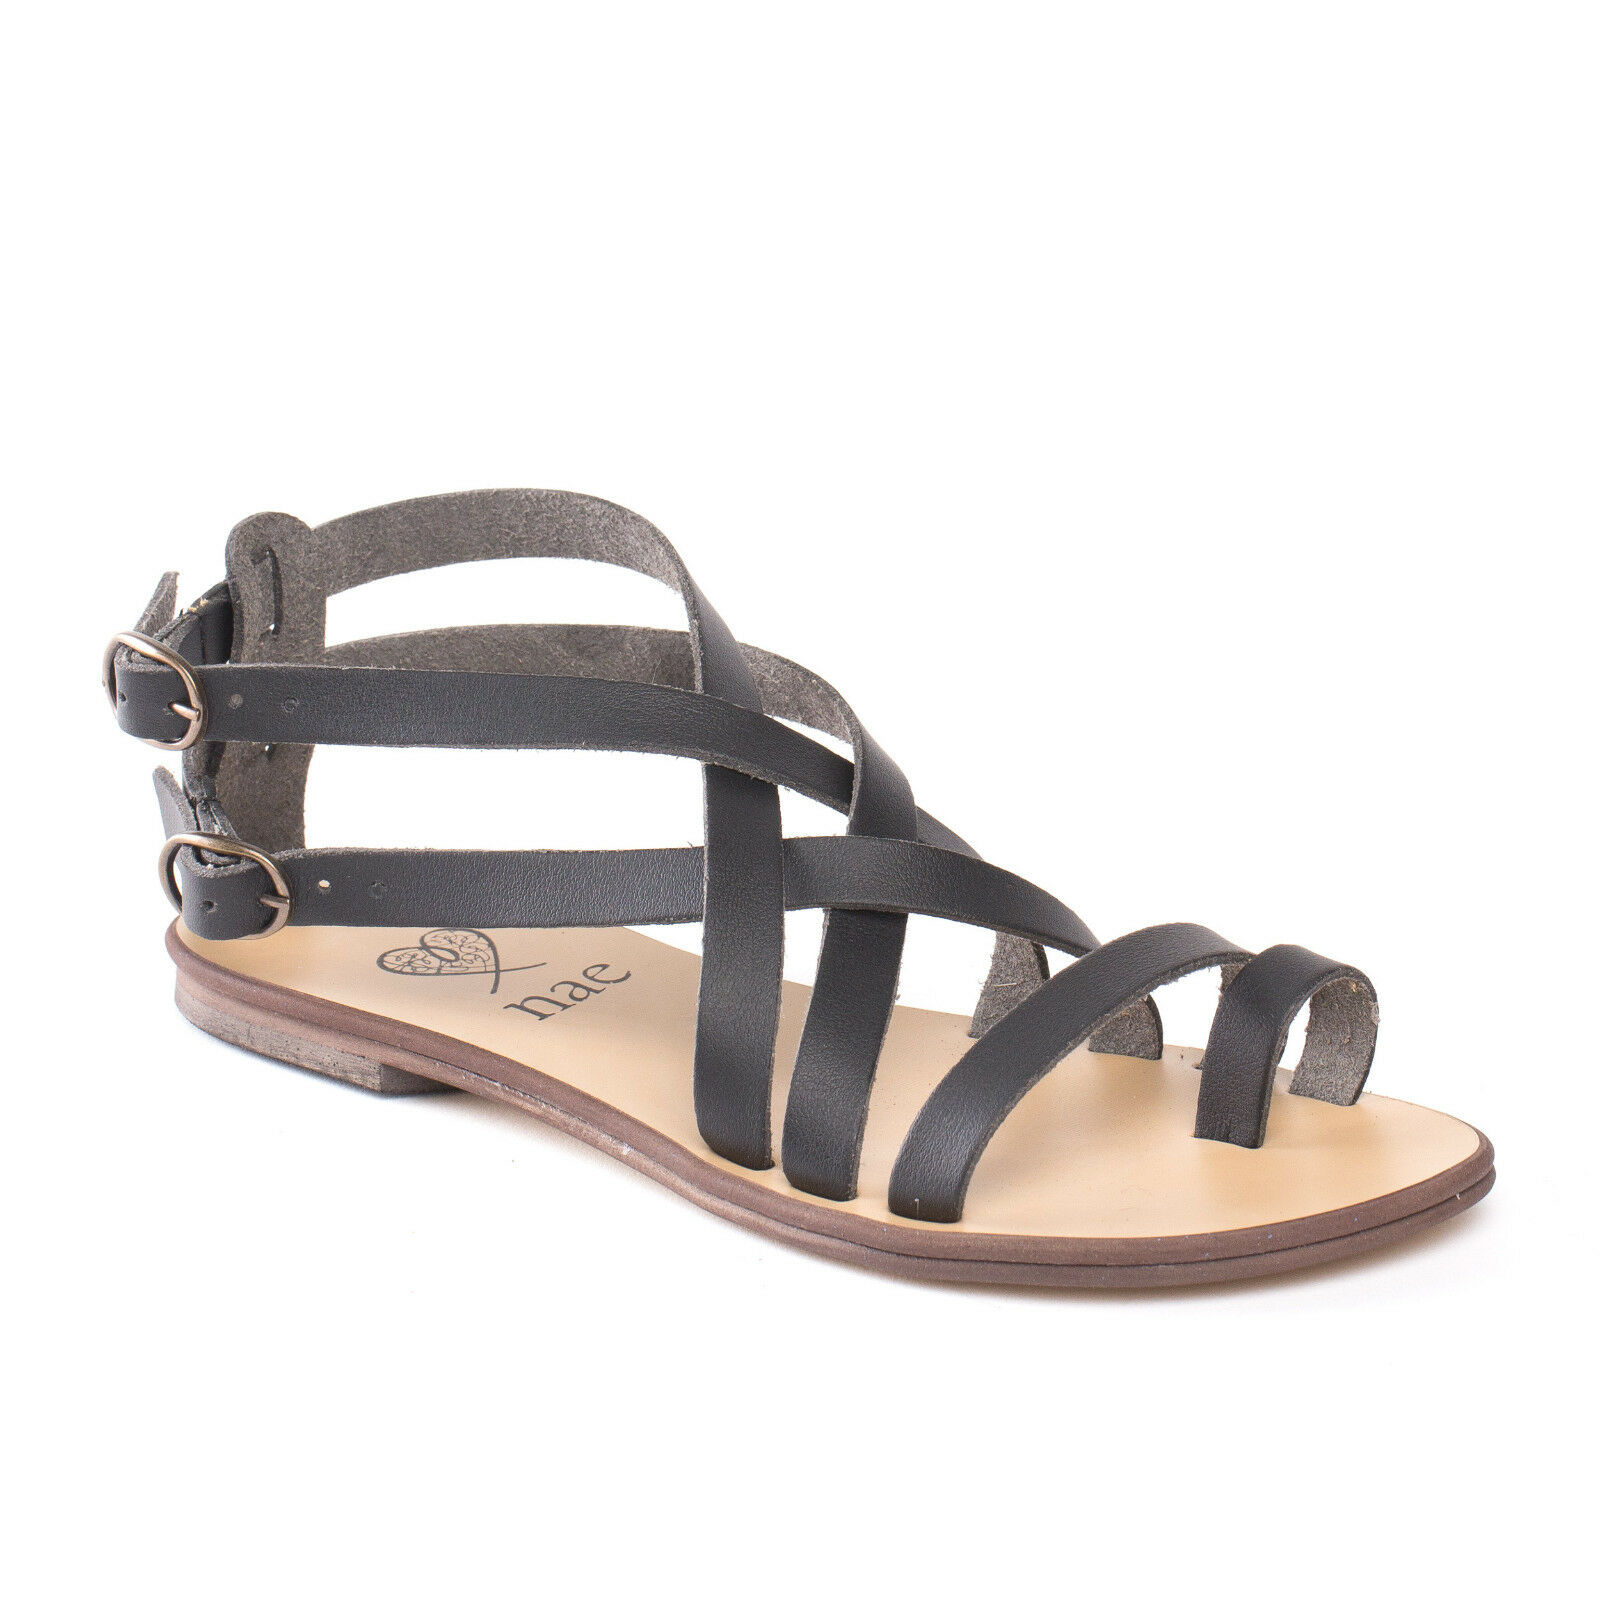 Woman vegan flat Sandalee strapped with metal buckle gladiator ecological